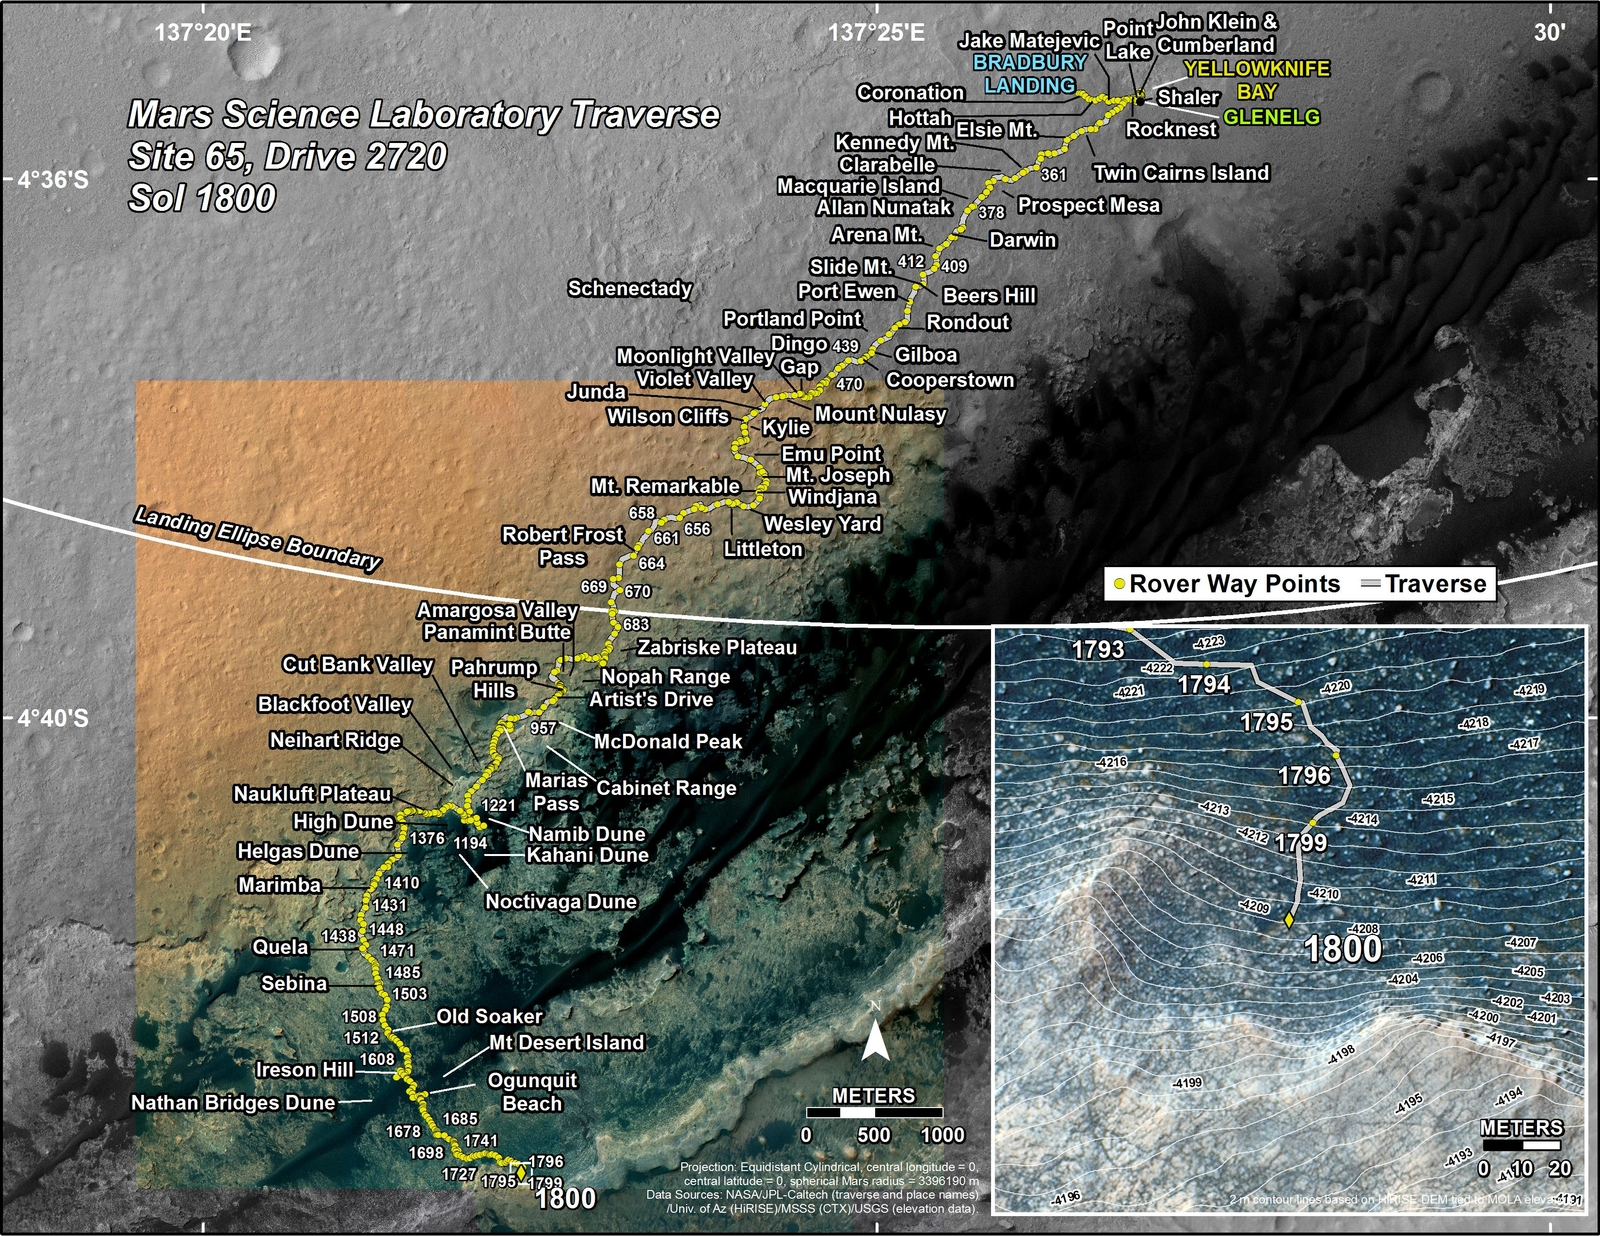 This map shows the route driven by NASA's Mars rover Curiosity through the 1800 Martian day, or sol, of the rover's mission on Mars (August 30, 2017).